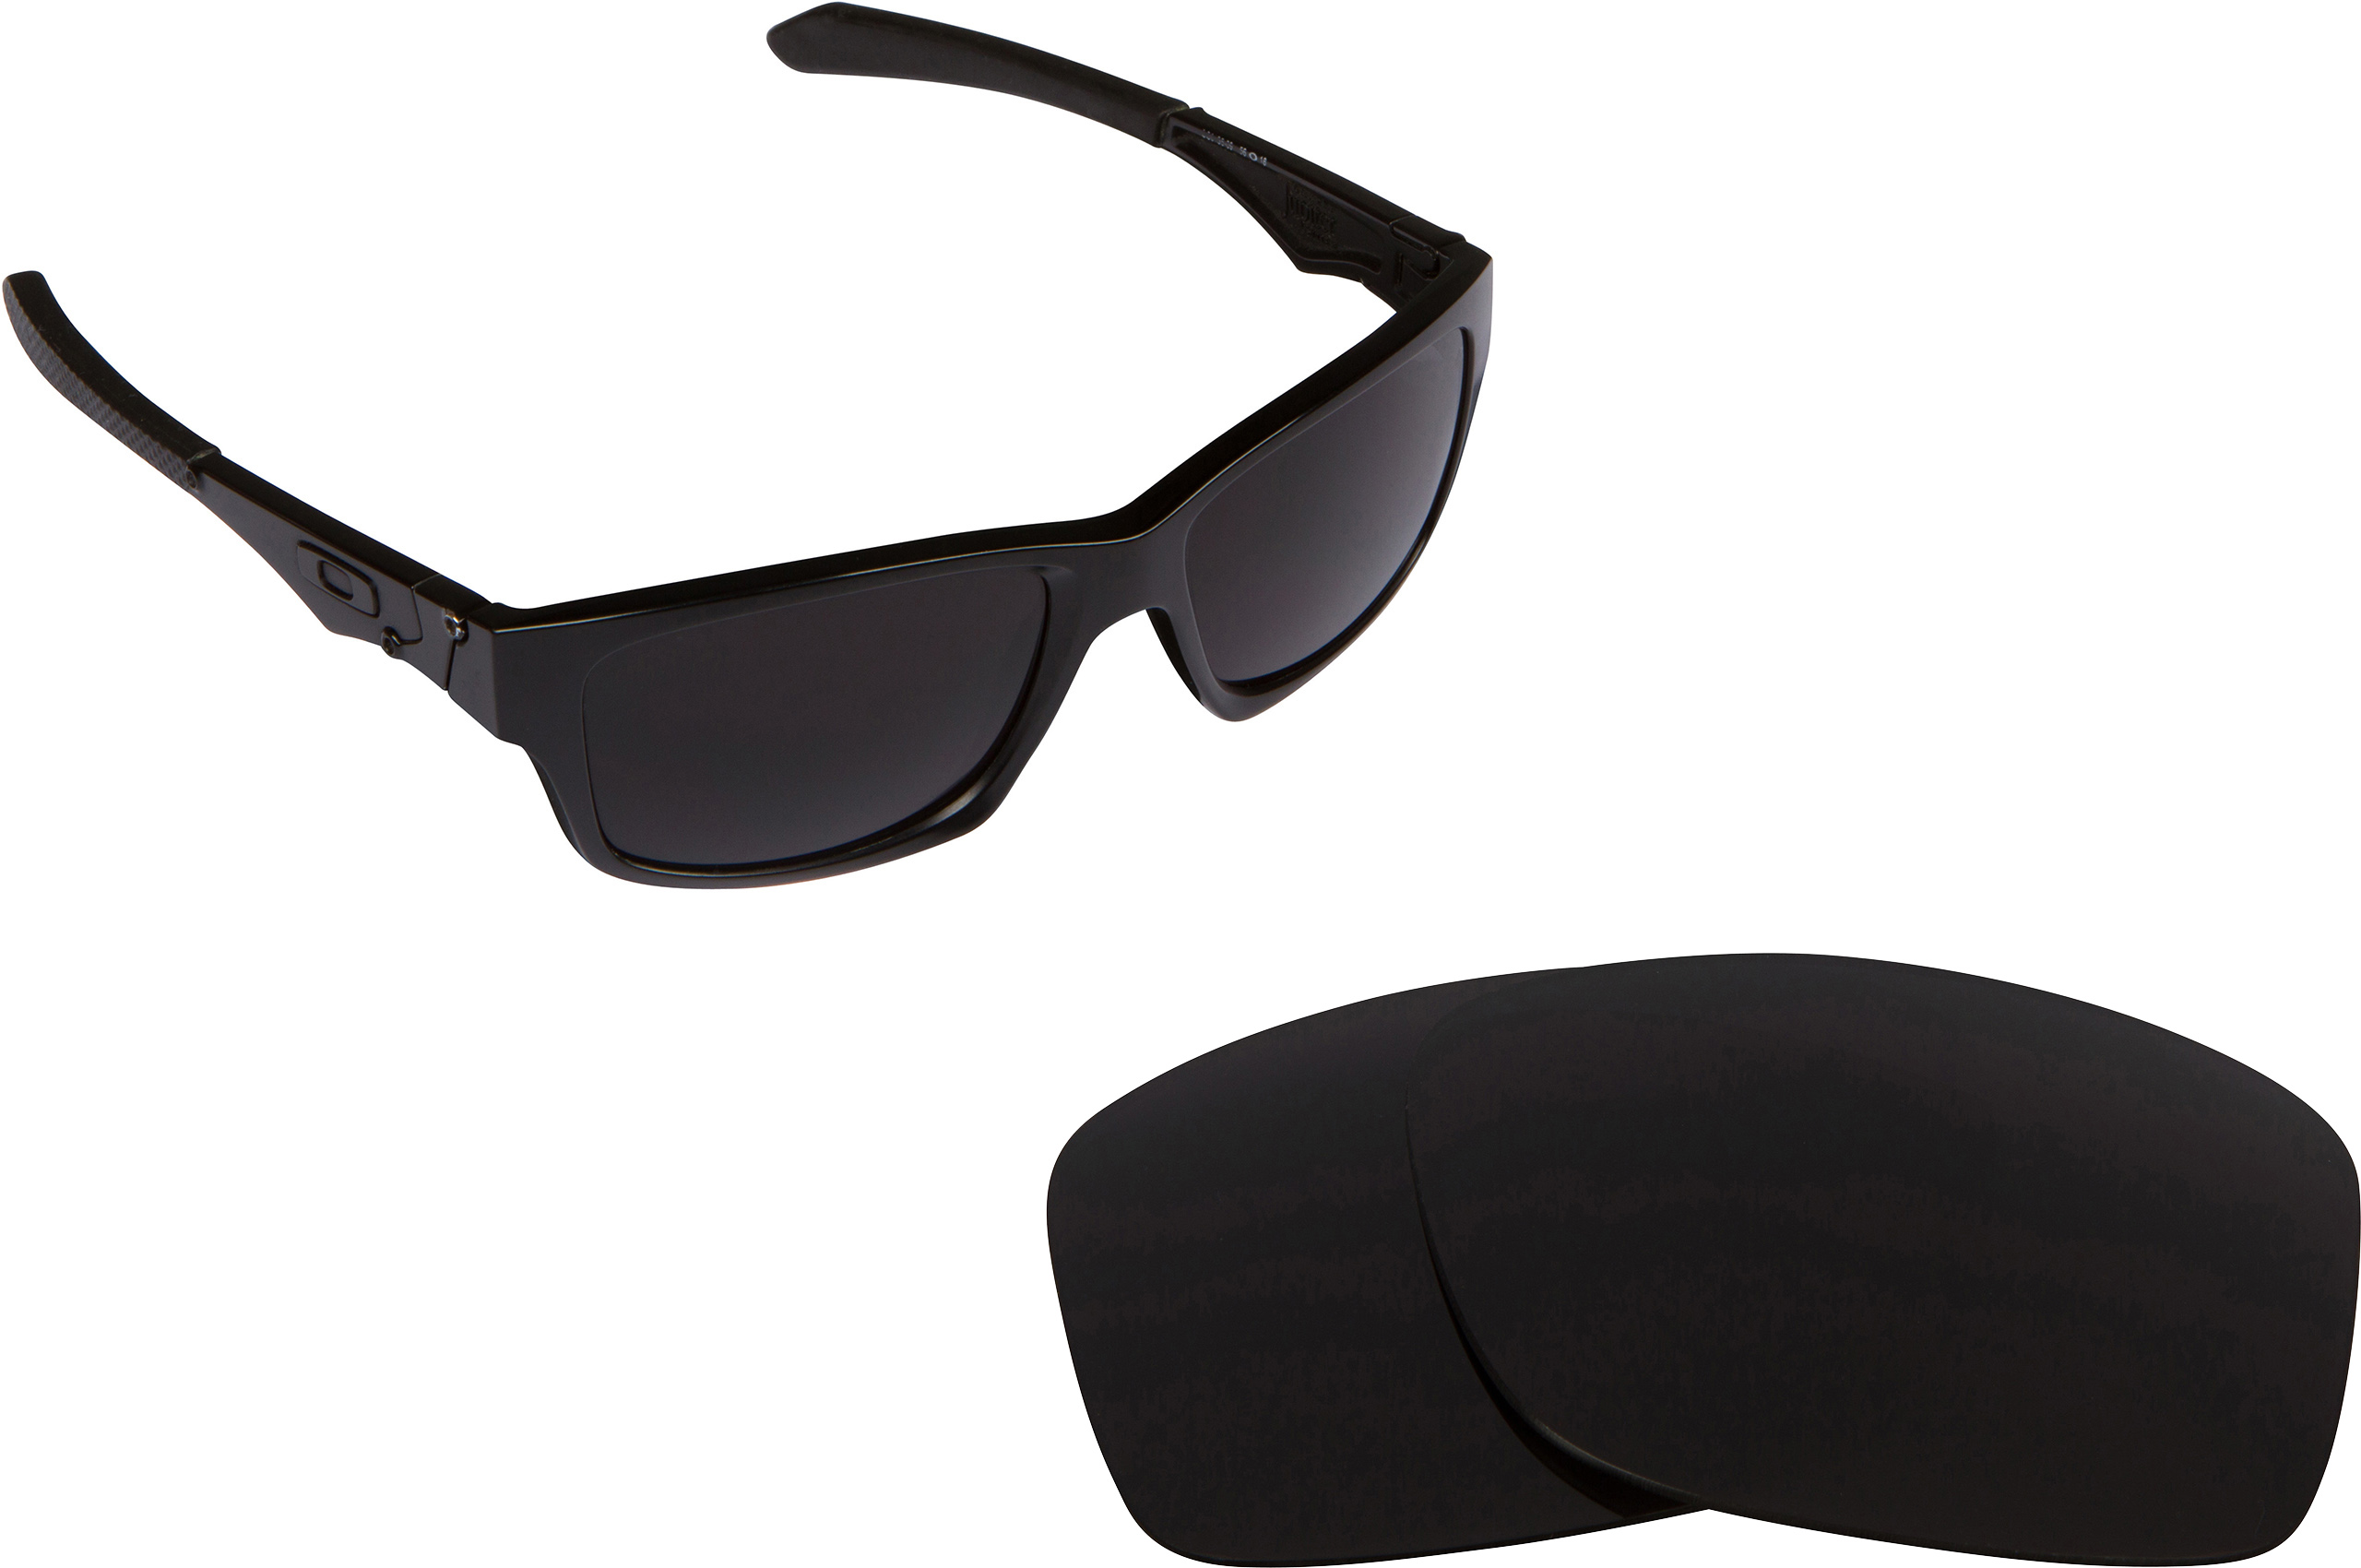 361f503c39 New SEEK Replacement Lenses for Oakley JUPITER SQUARED Black Gold Mirror -  Walmart.com